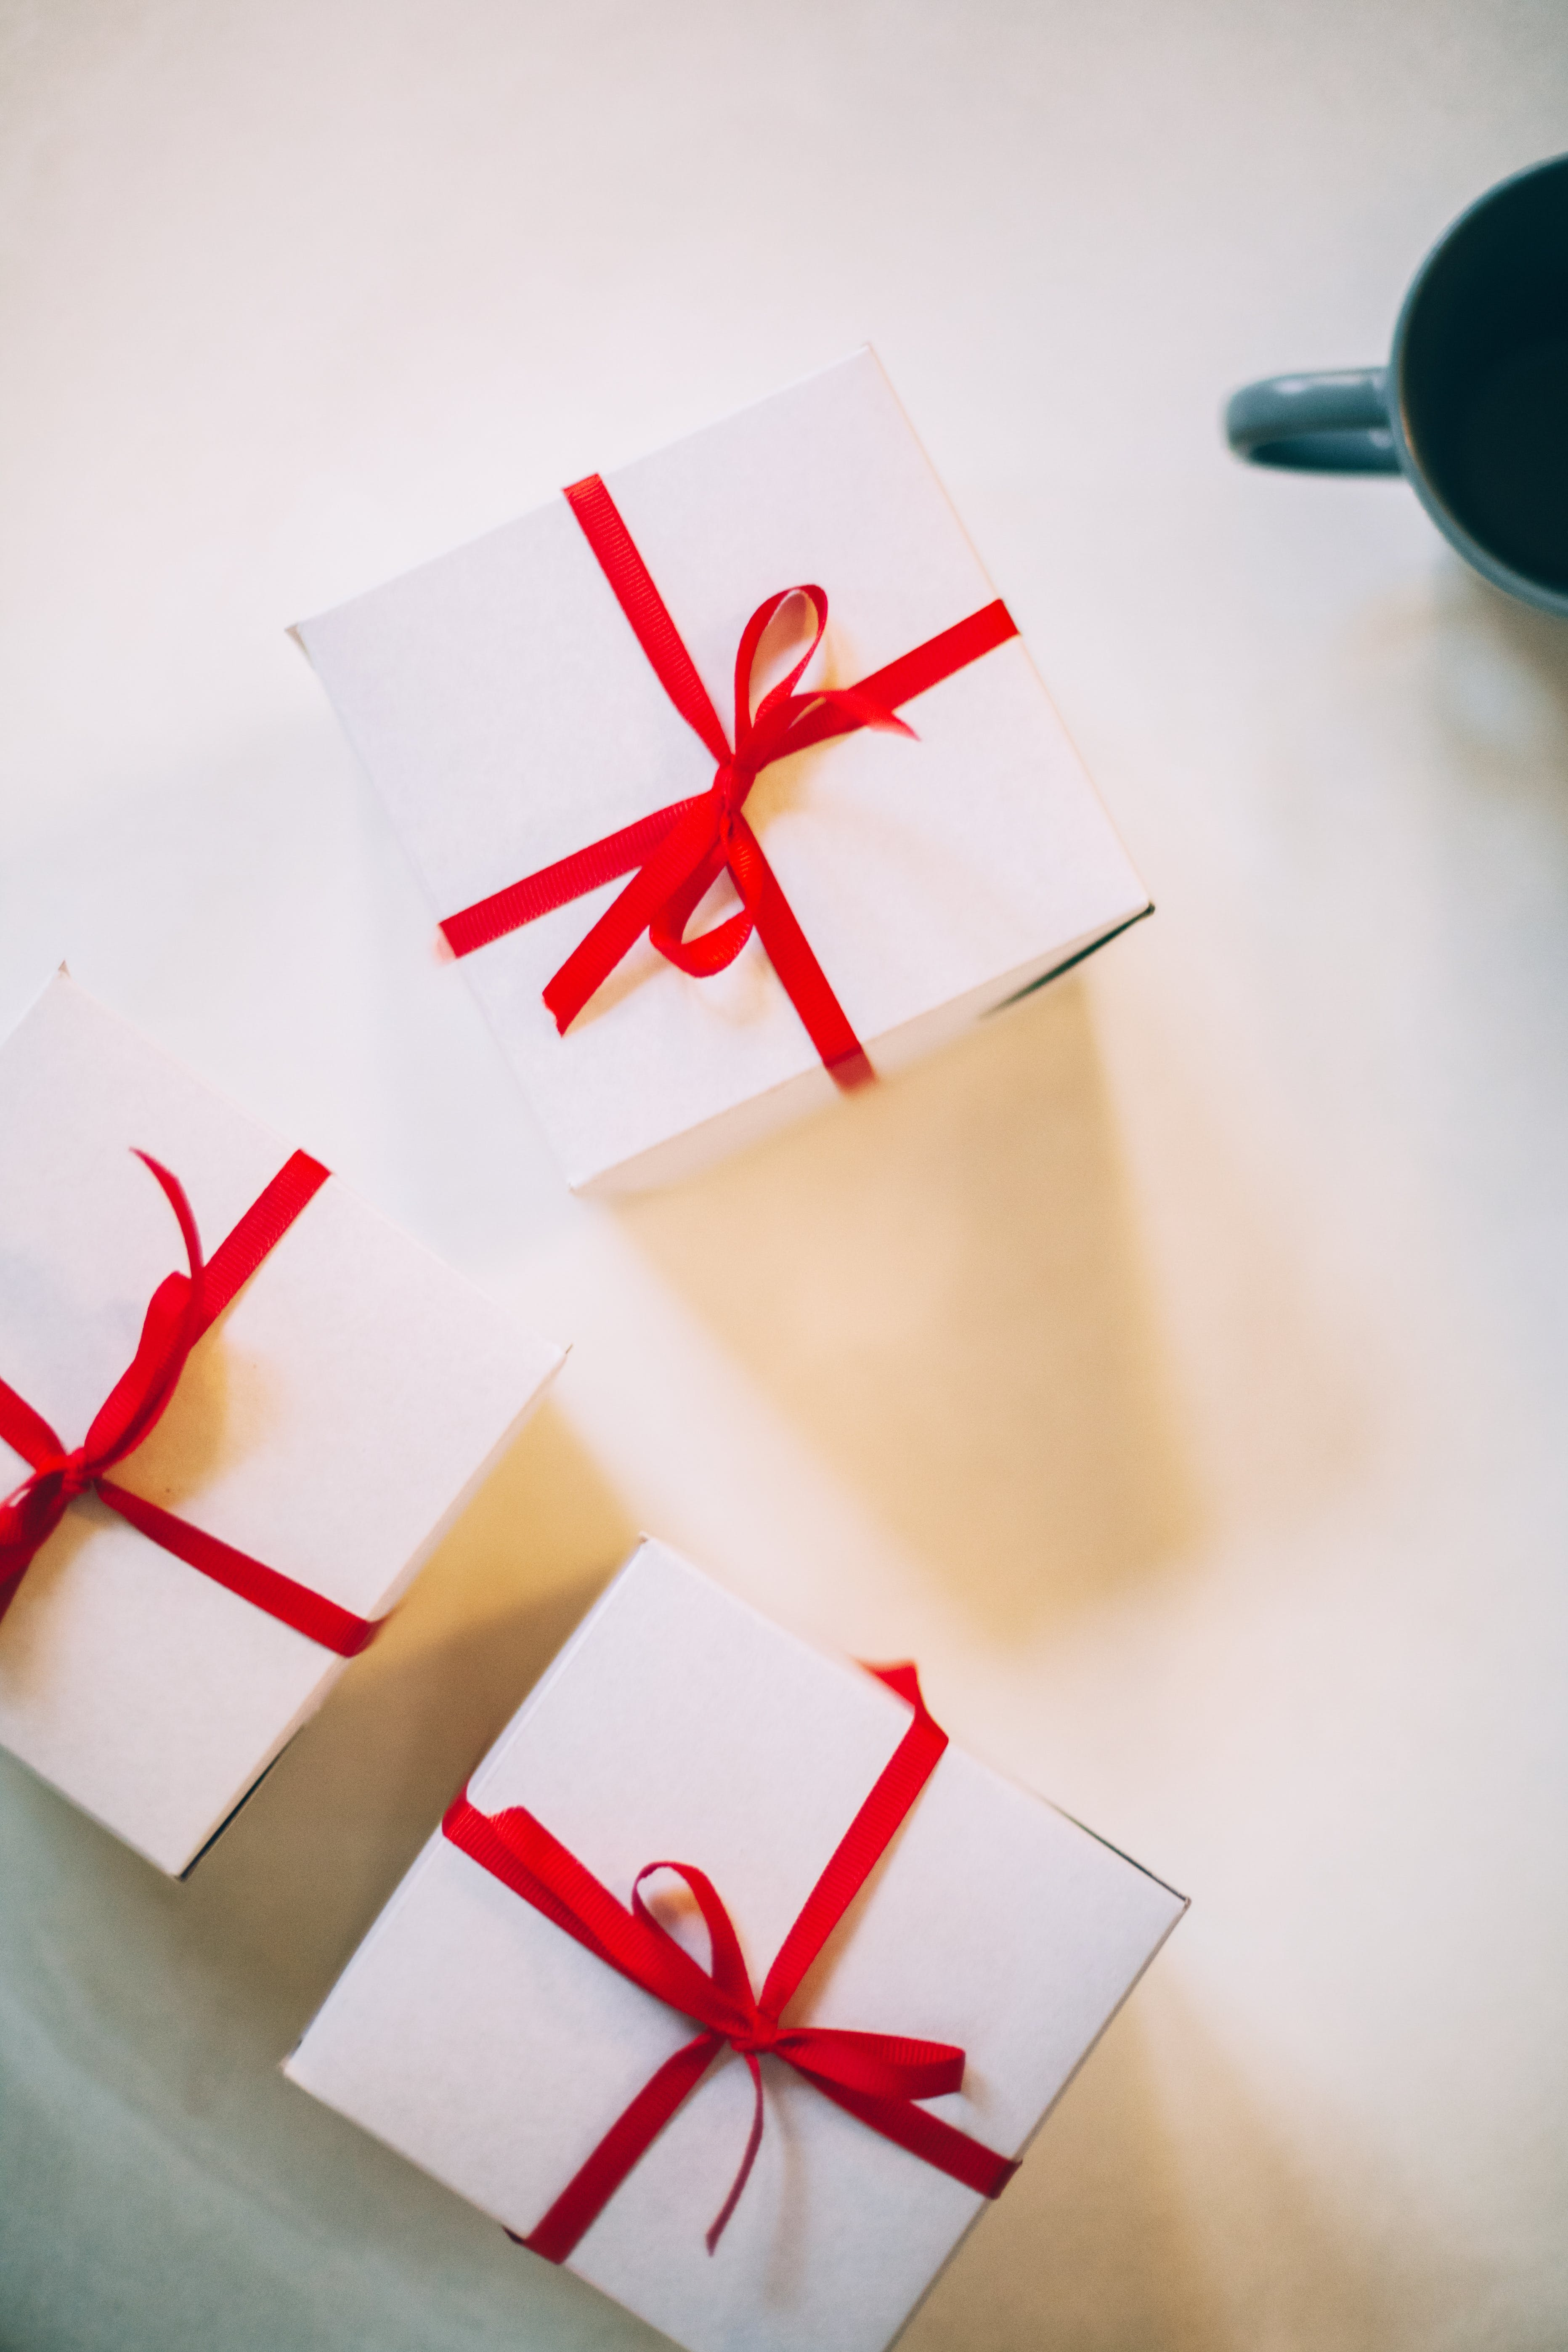 Photography of Three Boxes With Red Ribbons